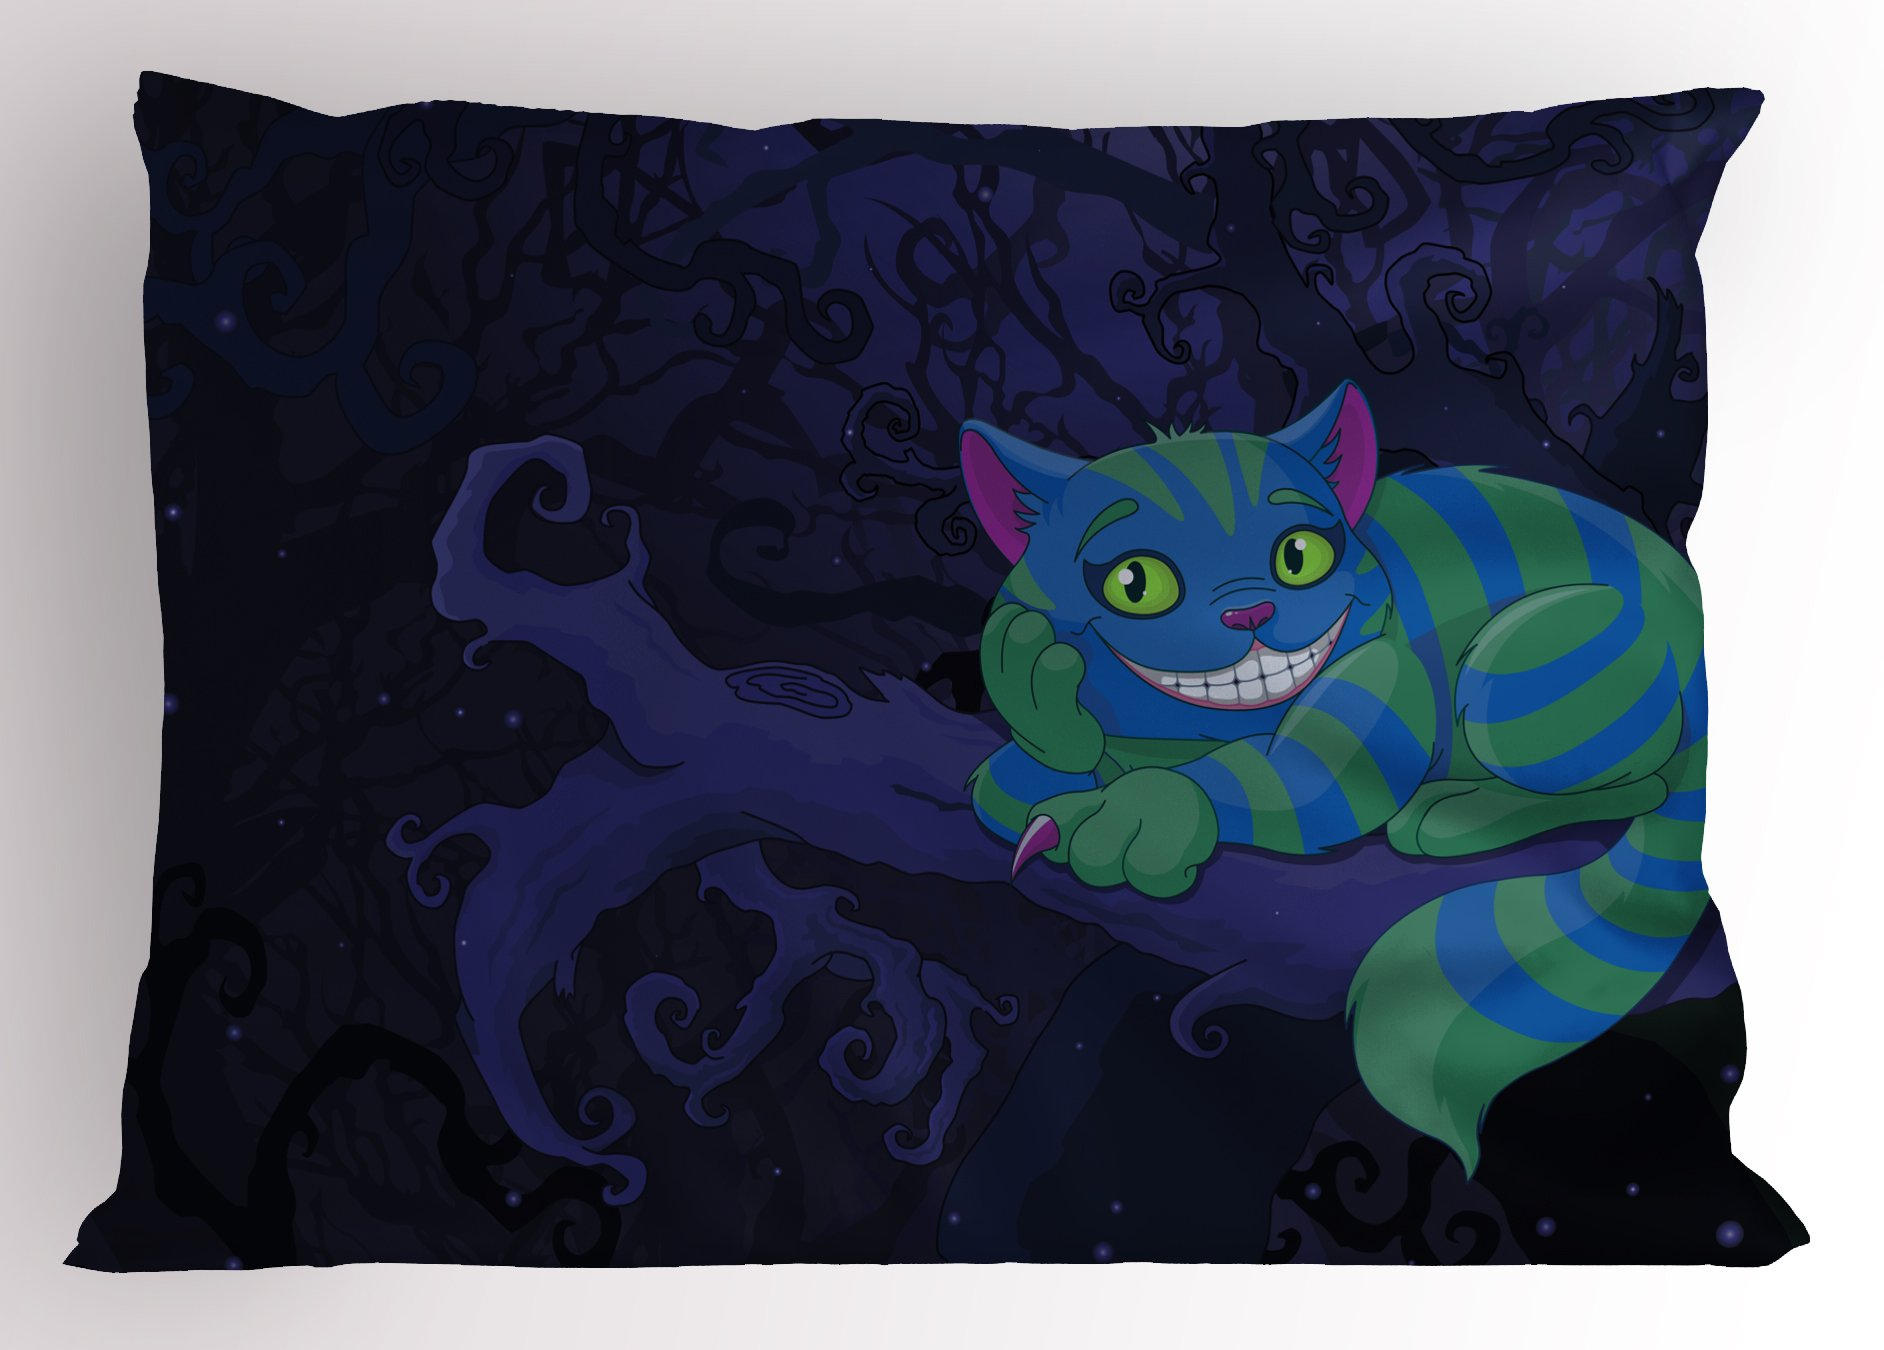 Lunarable Alice in Wonderland Pillow Sham, Chester Cat Sitting on Branch Fairytale Forest with Character, Decorative Standard Size Printed Pillowcase, 26 X 20 Inches, Green Blue Purple